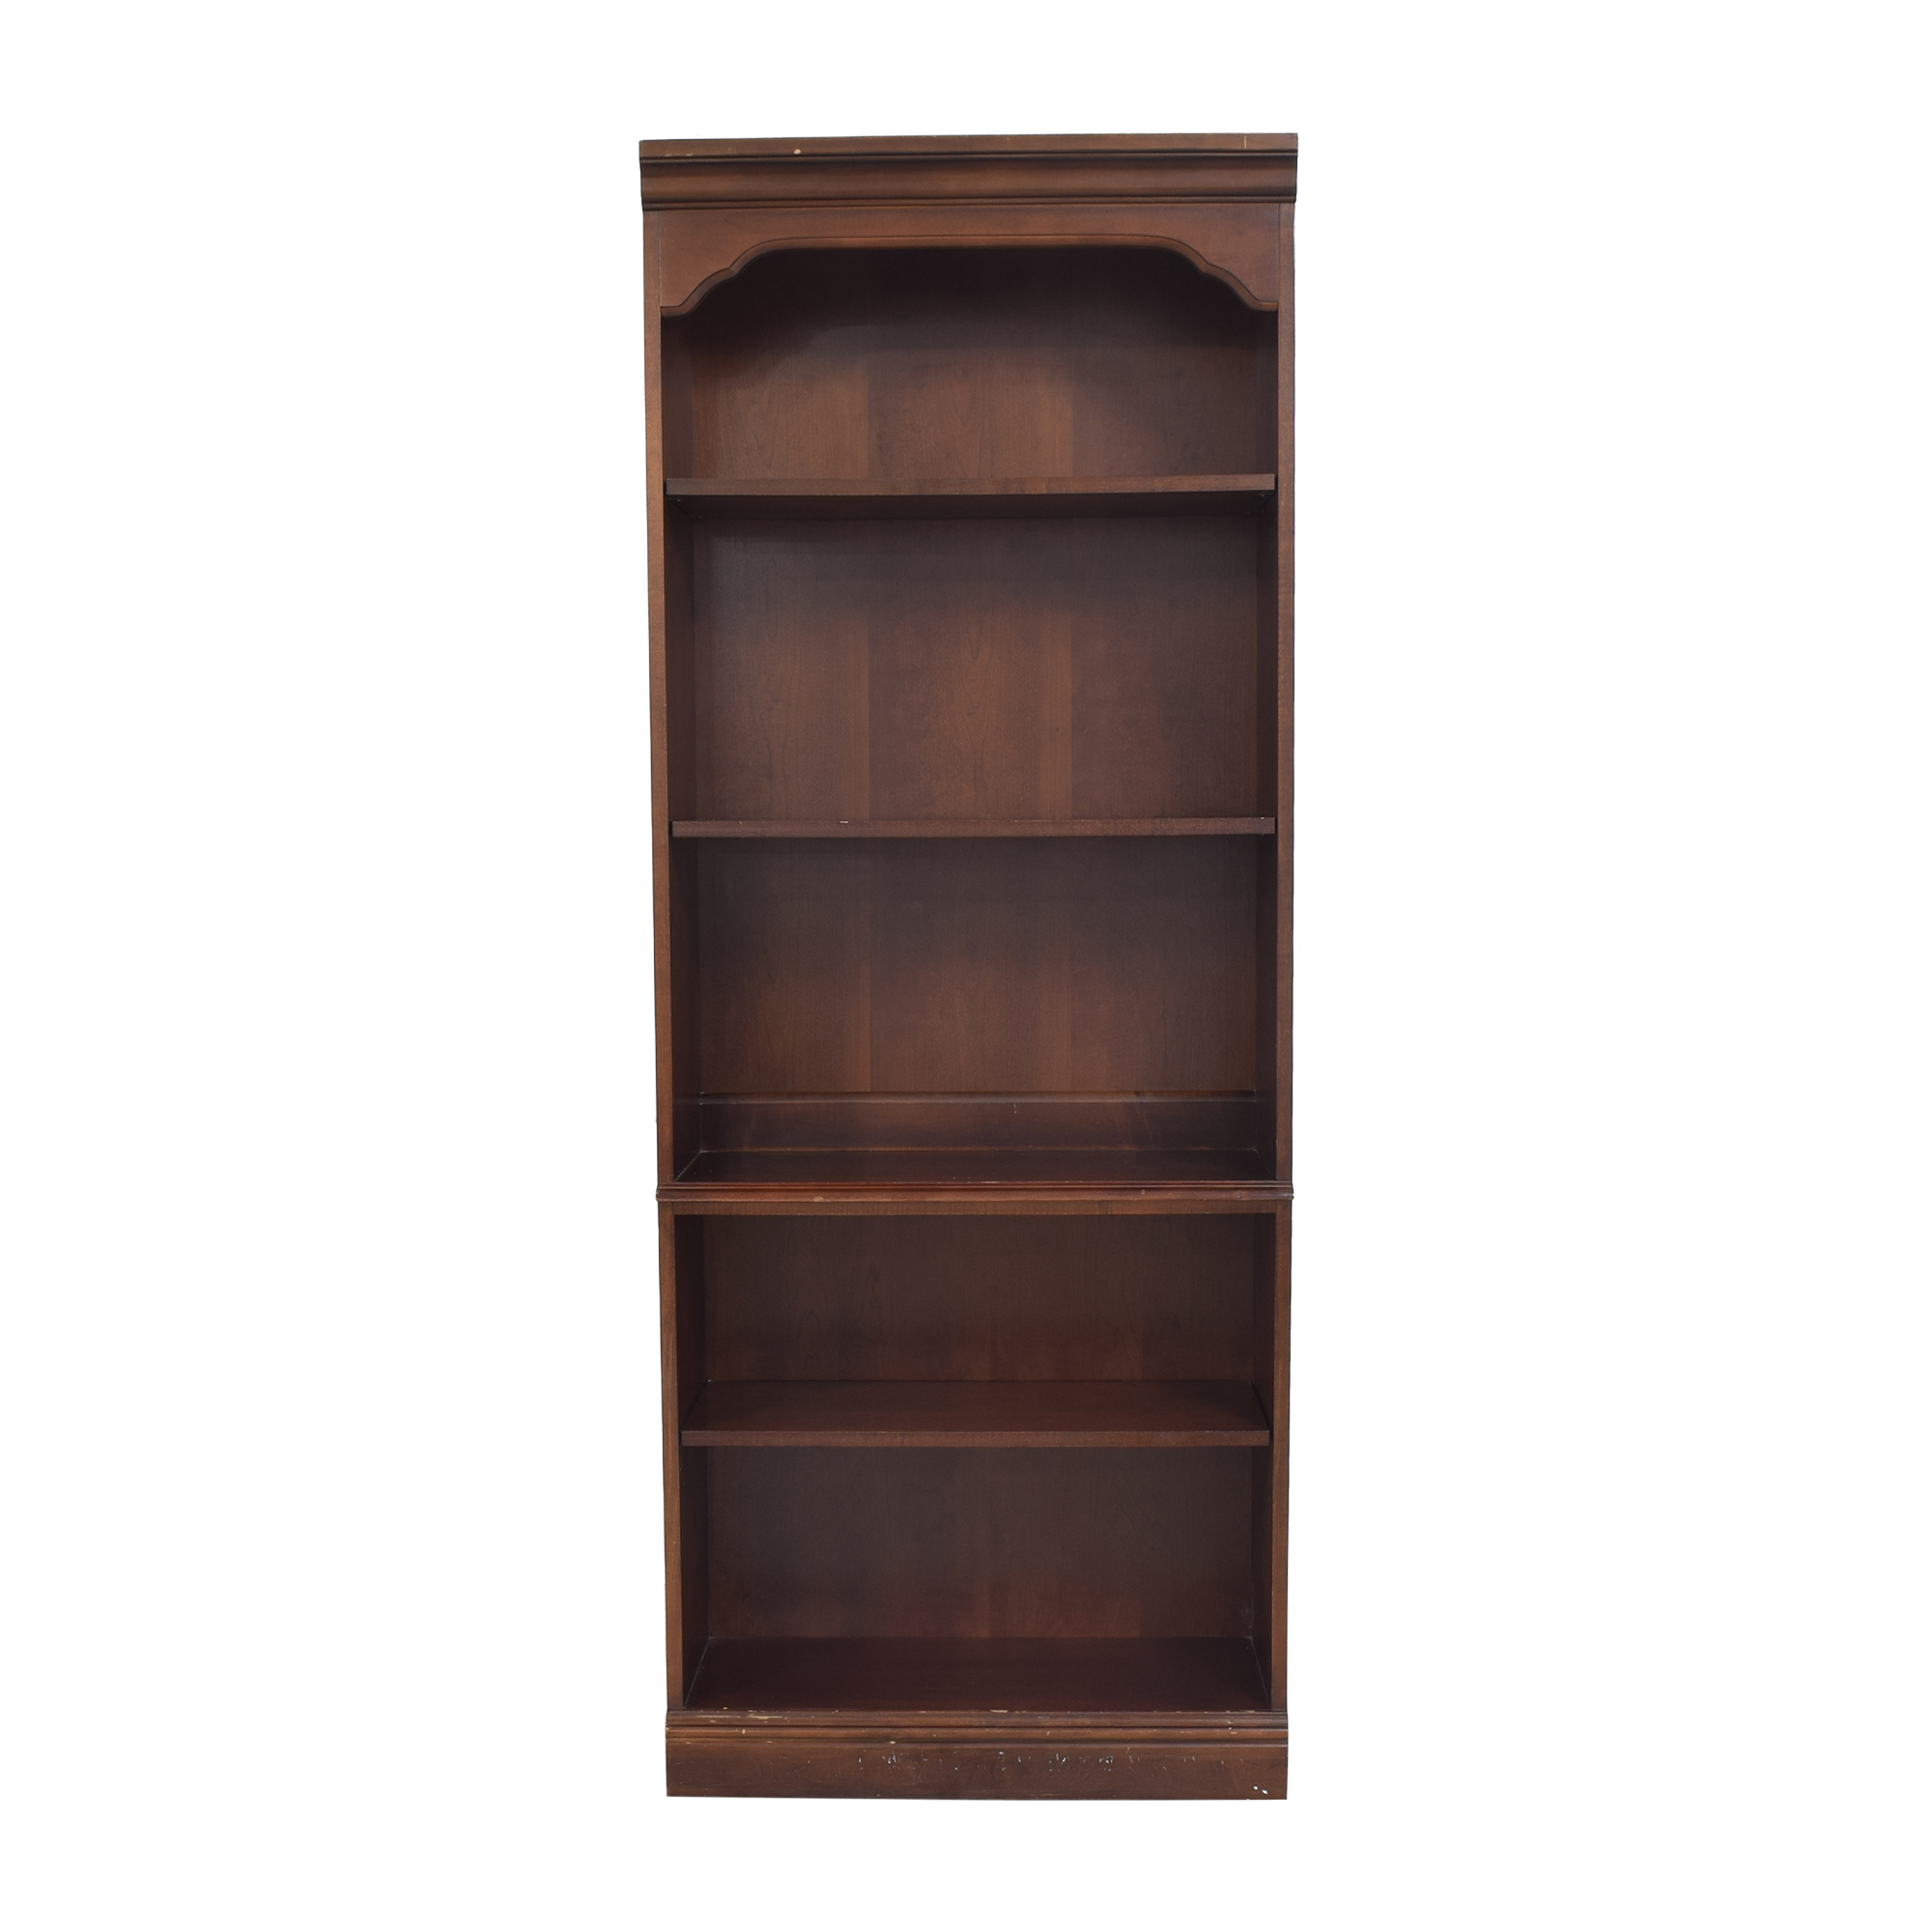 Hooker Furniture Hooker Furniture Tall Bookcase Bookcases & Shelving